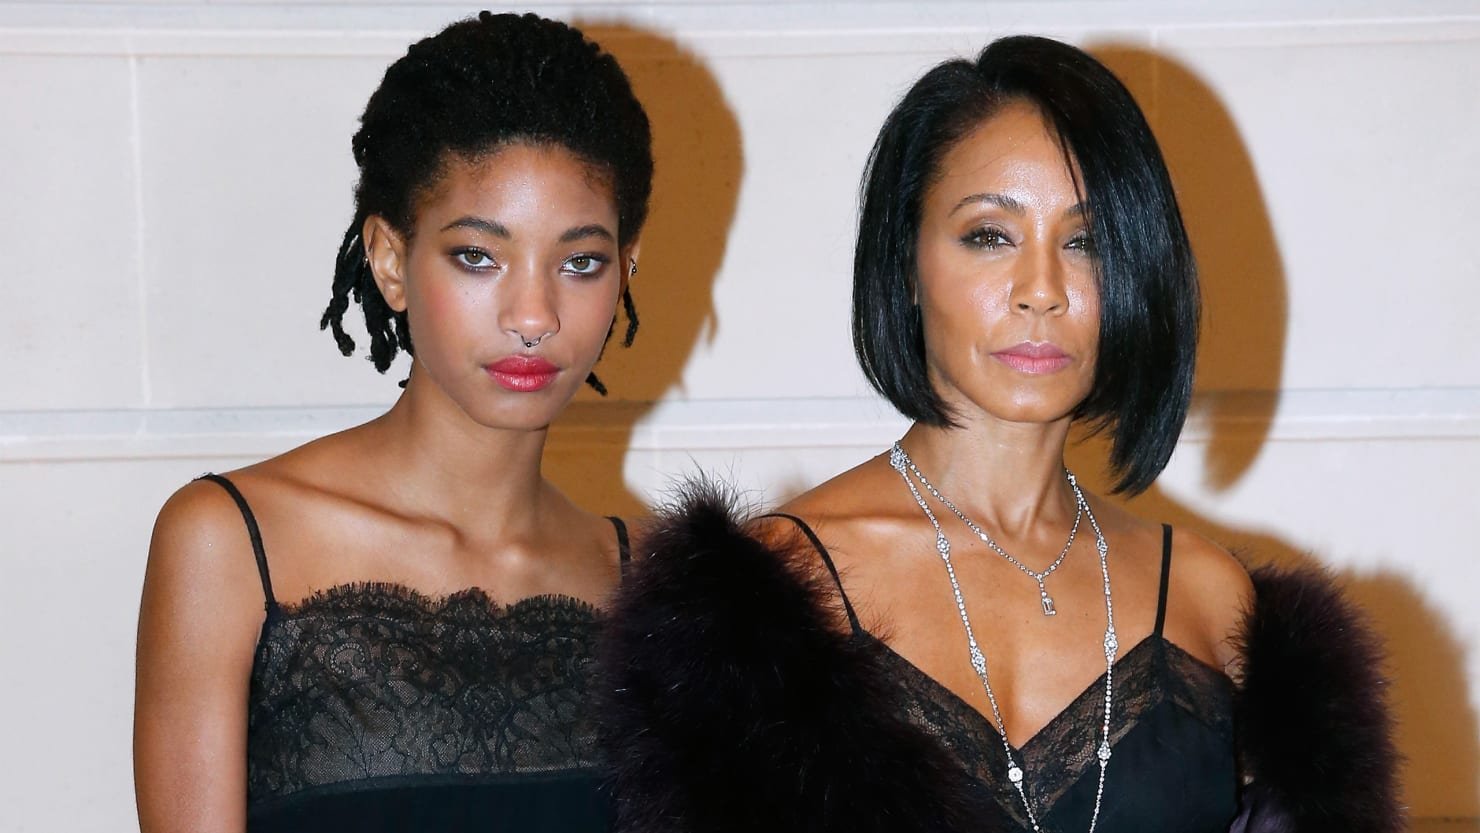 Jada Pinkett Smith on R. Kelly: 'We All Have Been' Complicit